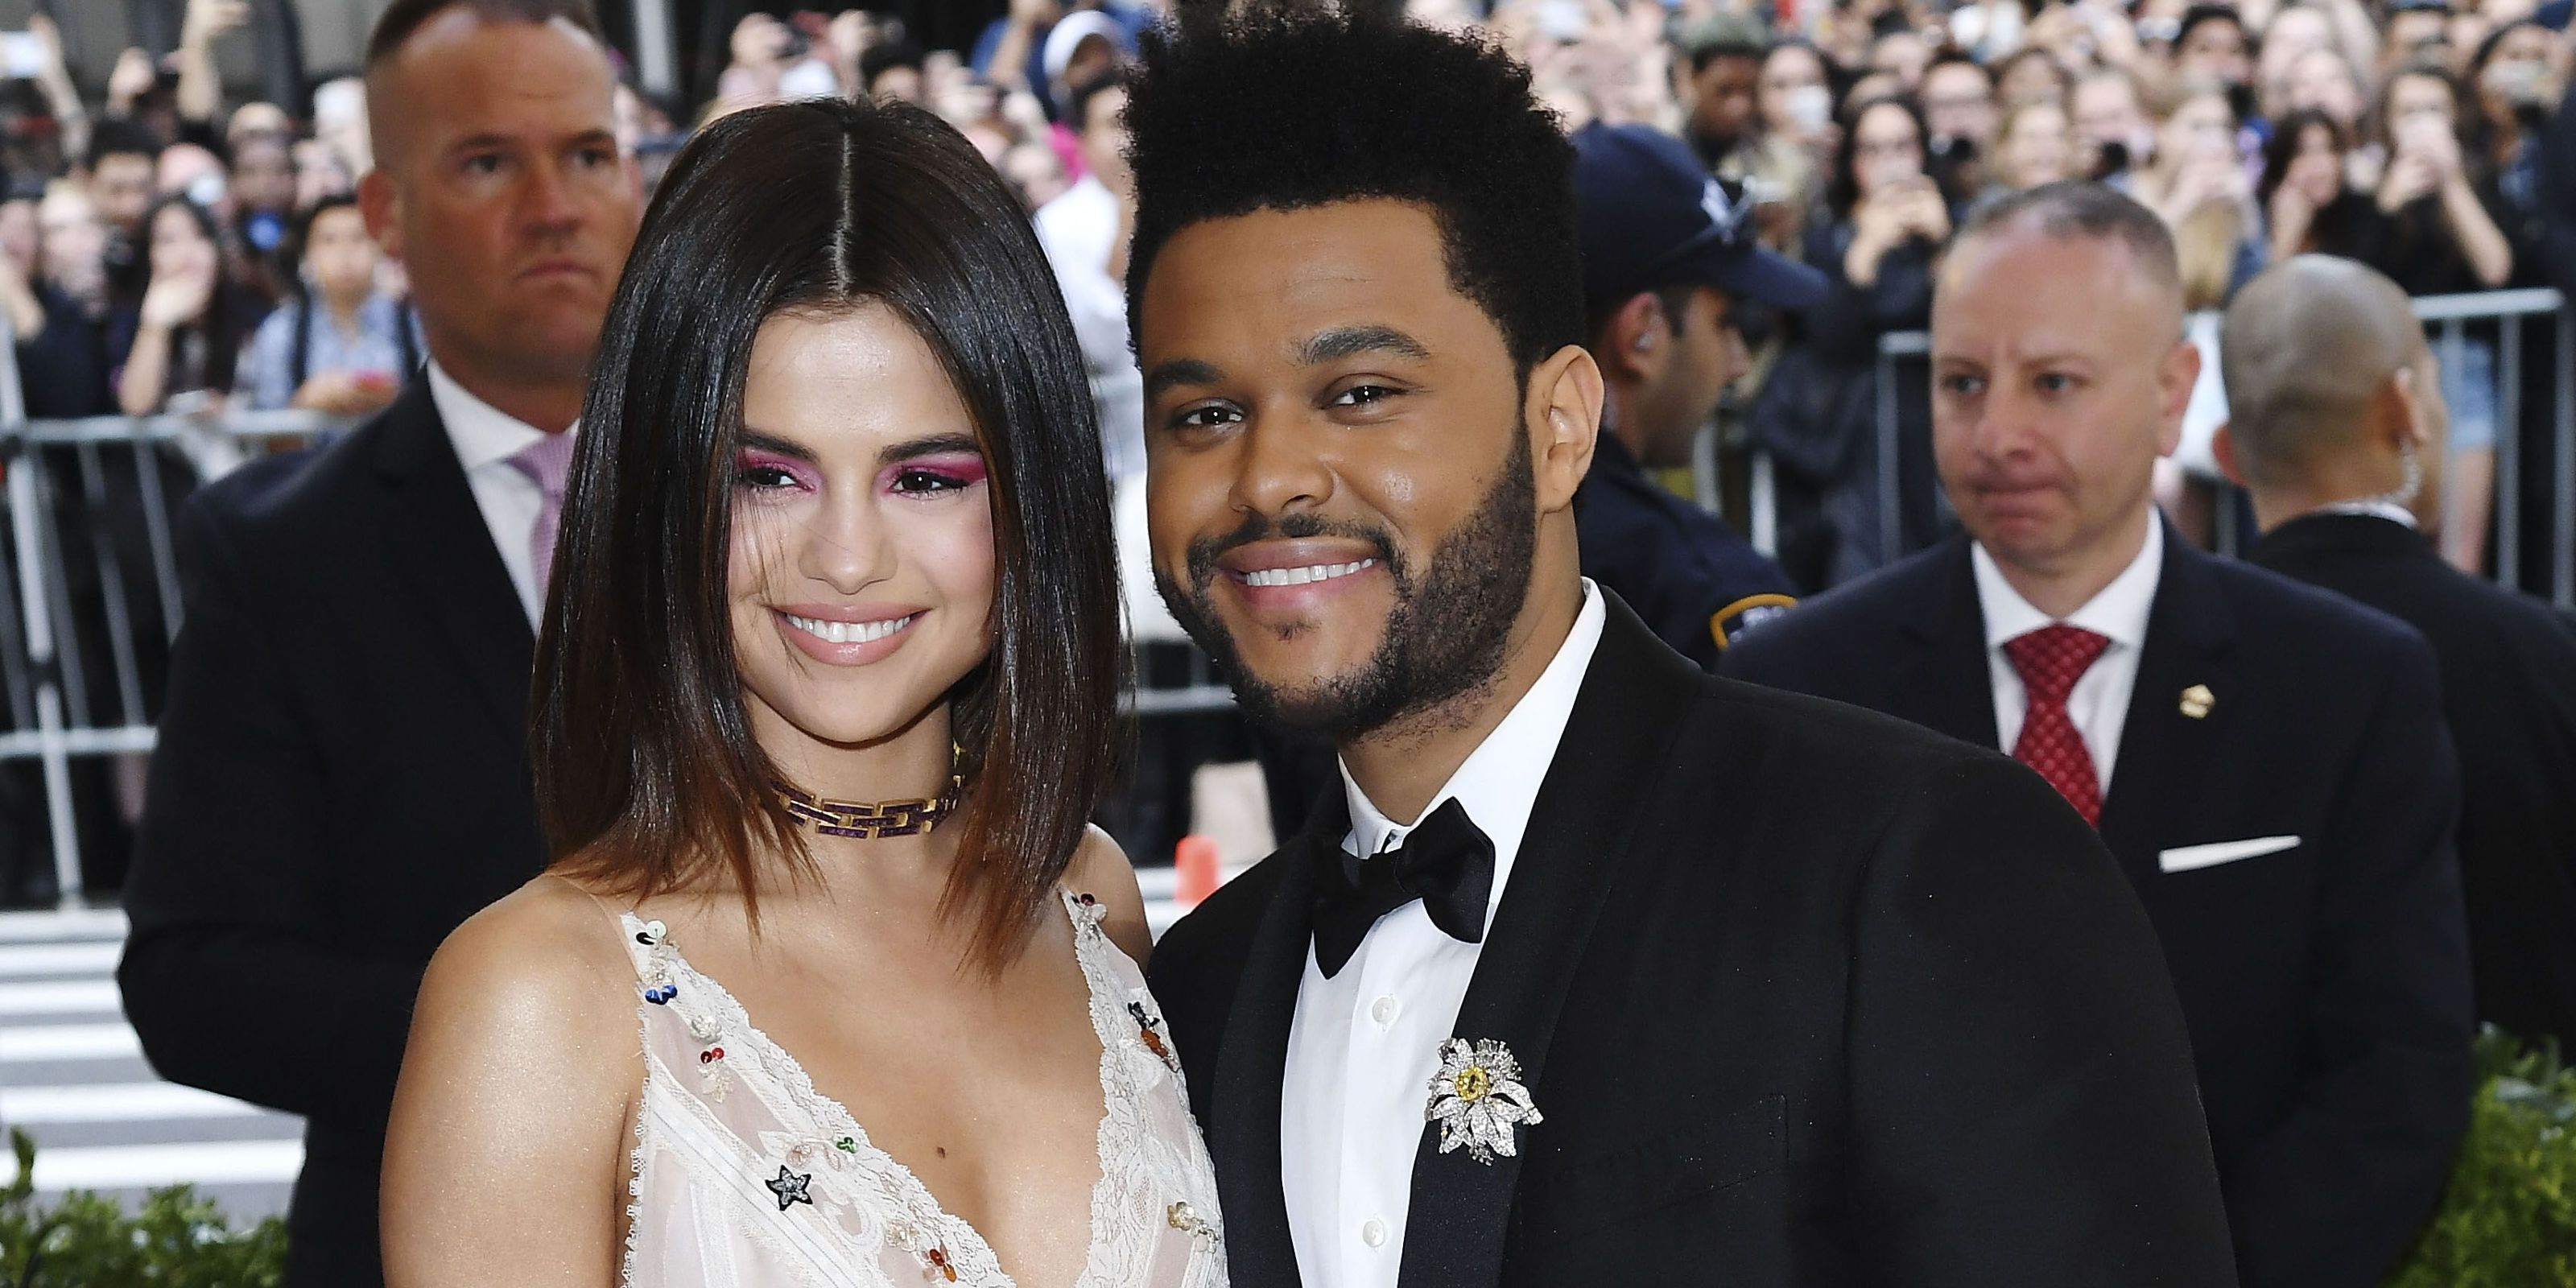 Who is selena gomez dating now 2019